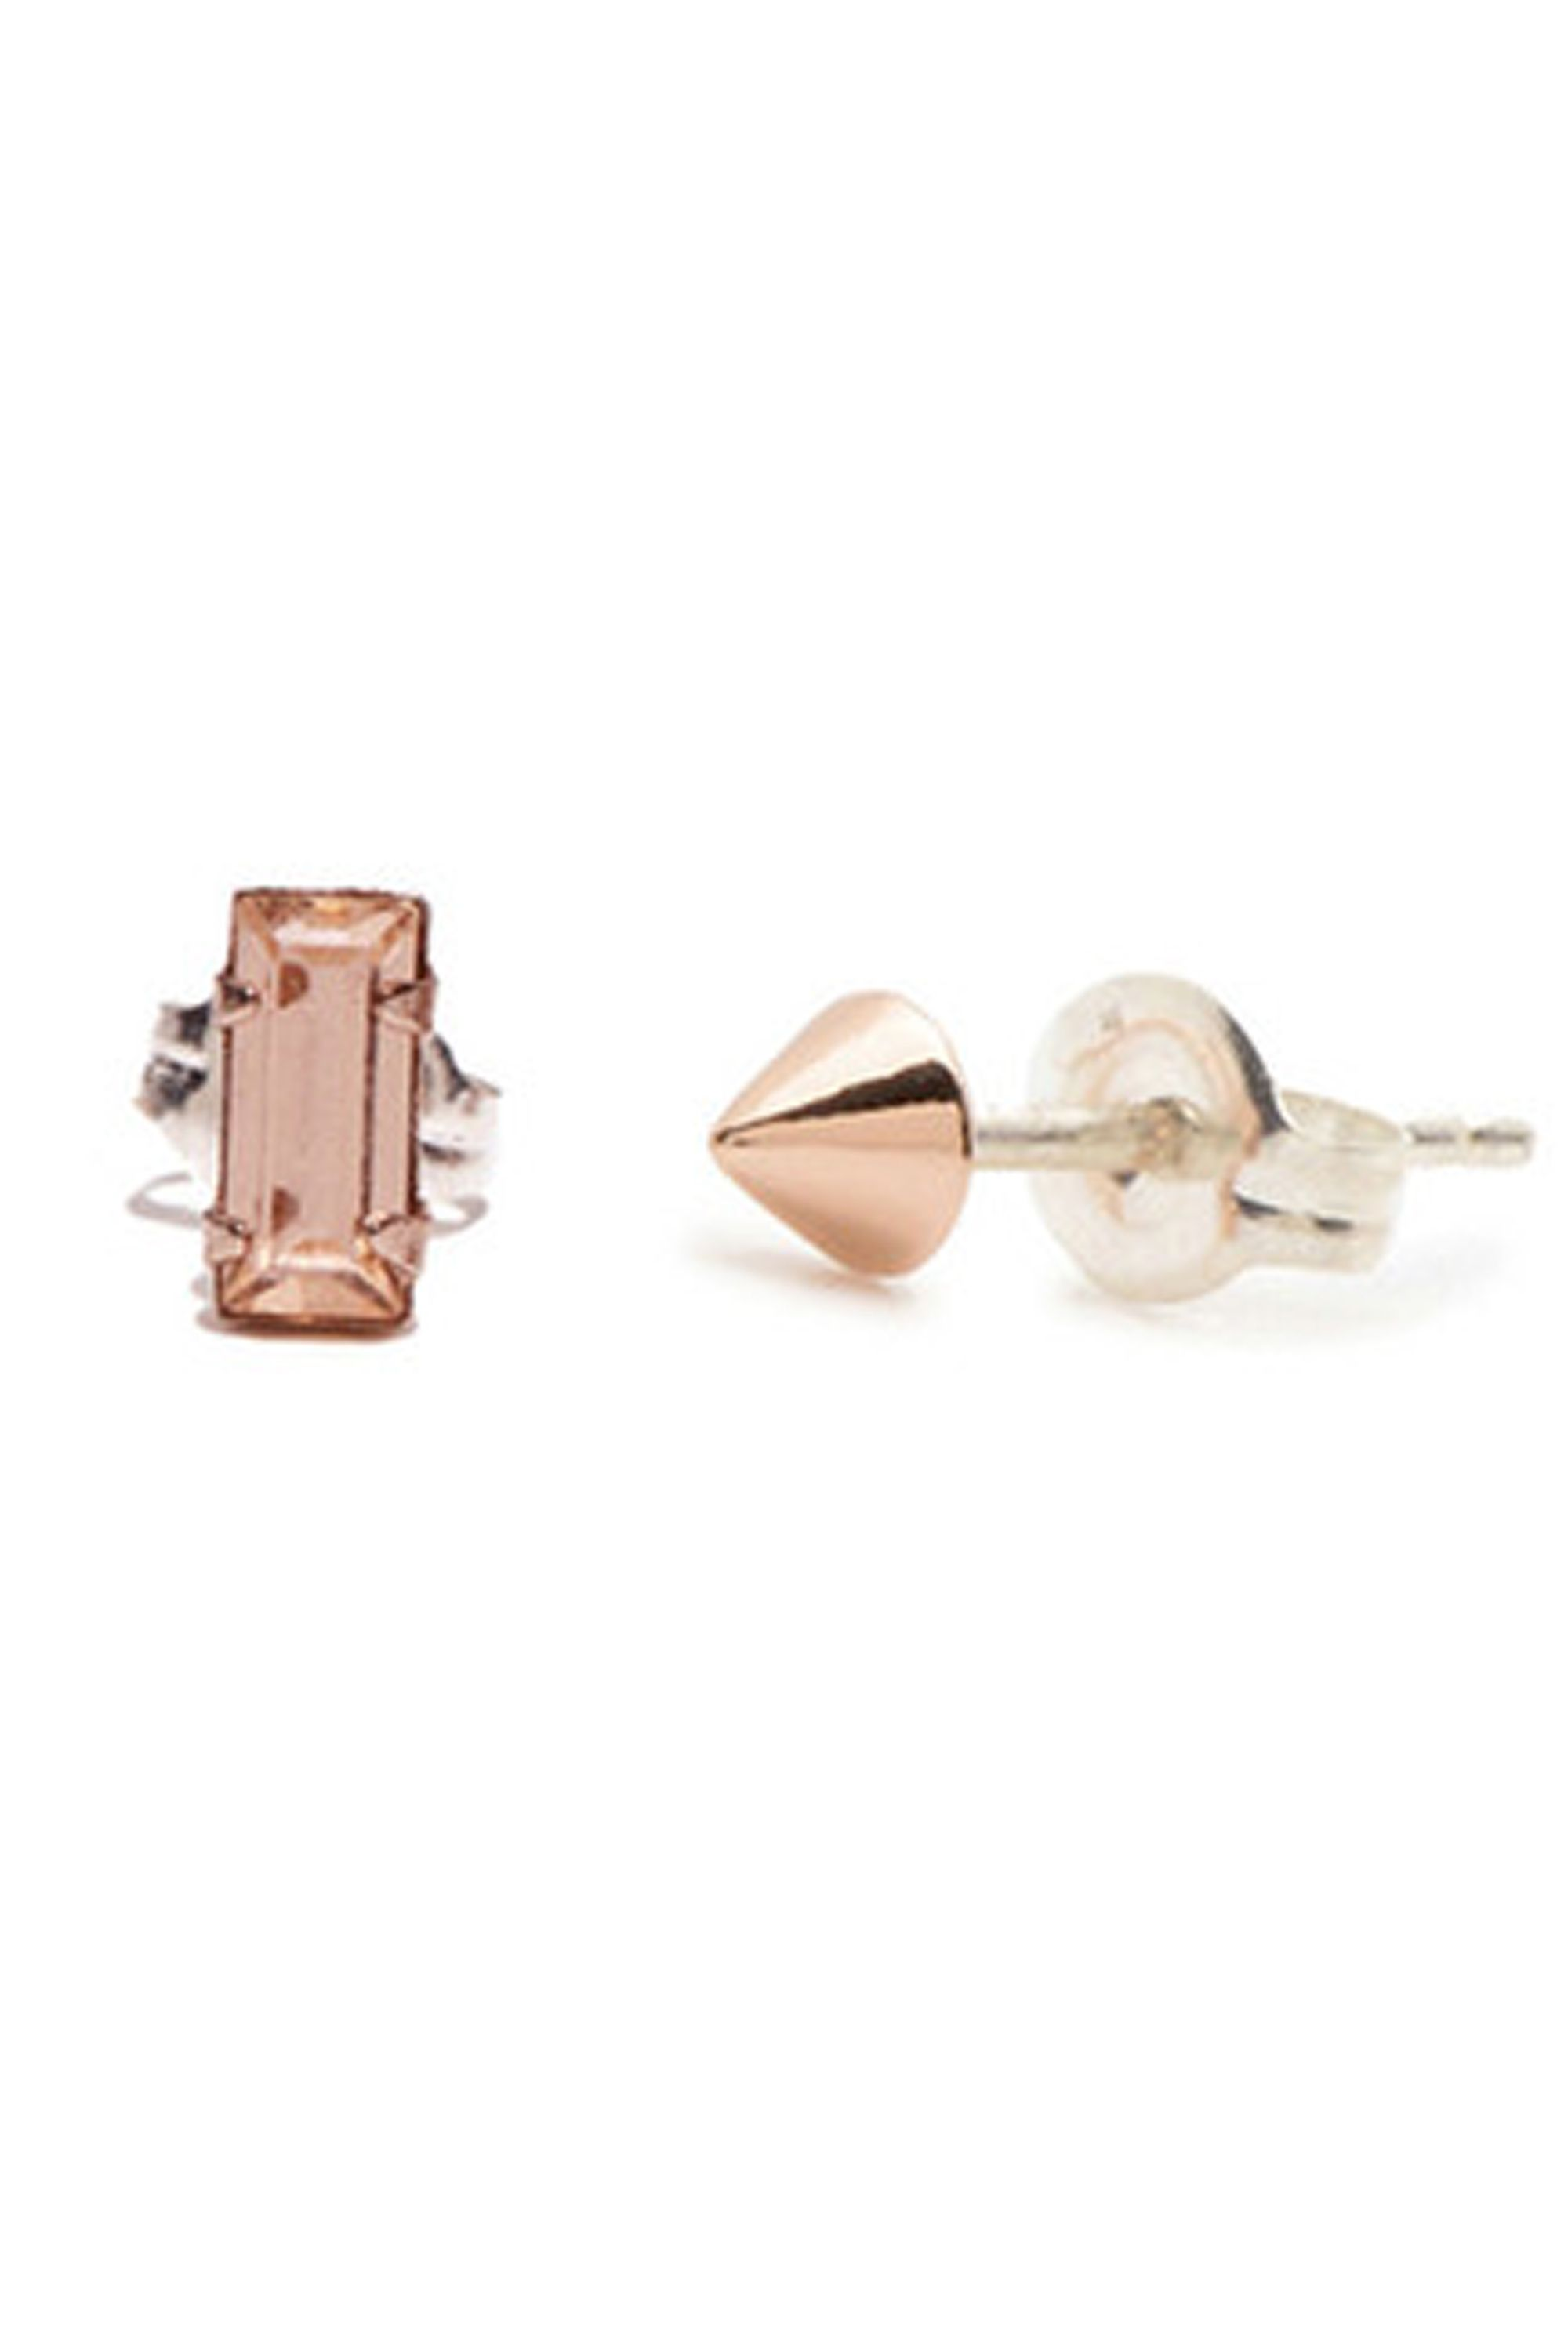 stone of on maria earrings alphabet mismatched our for up trio a pin doubles touch